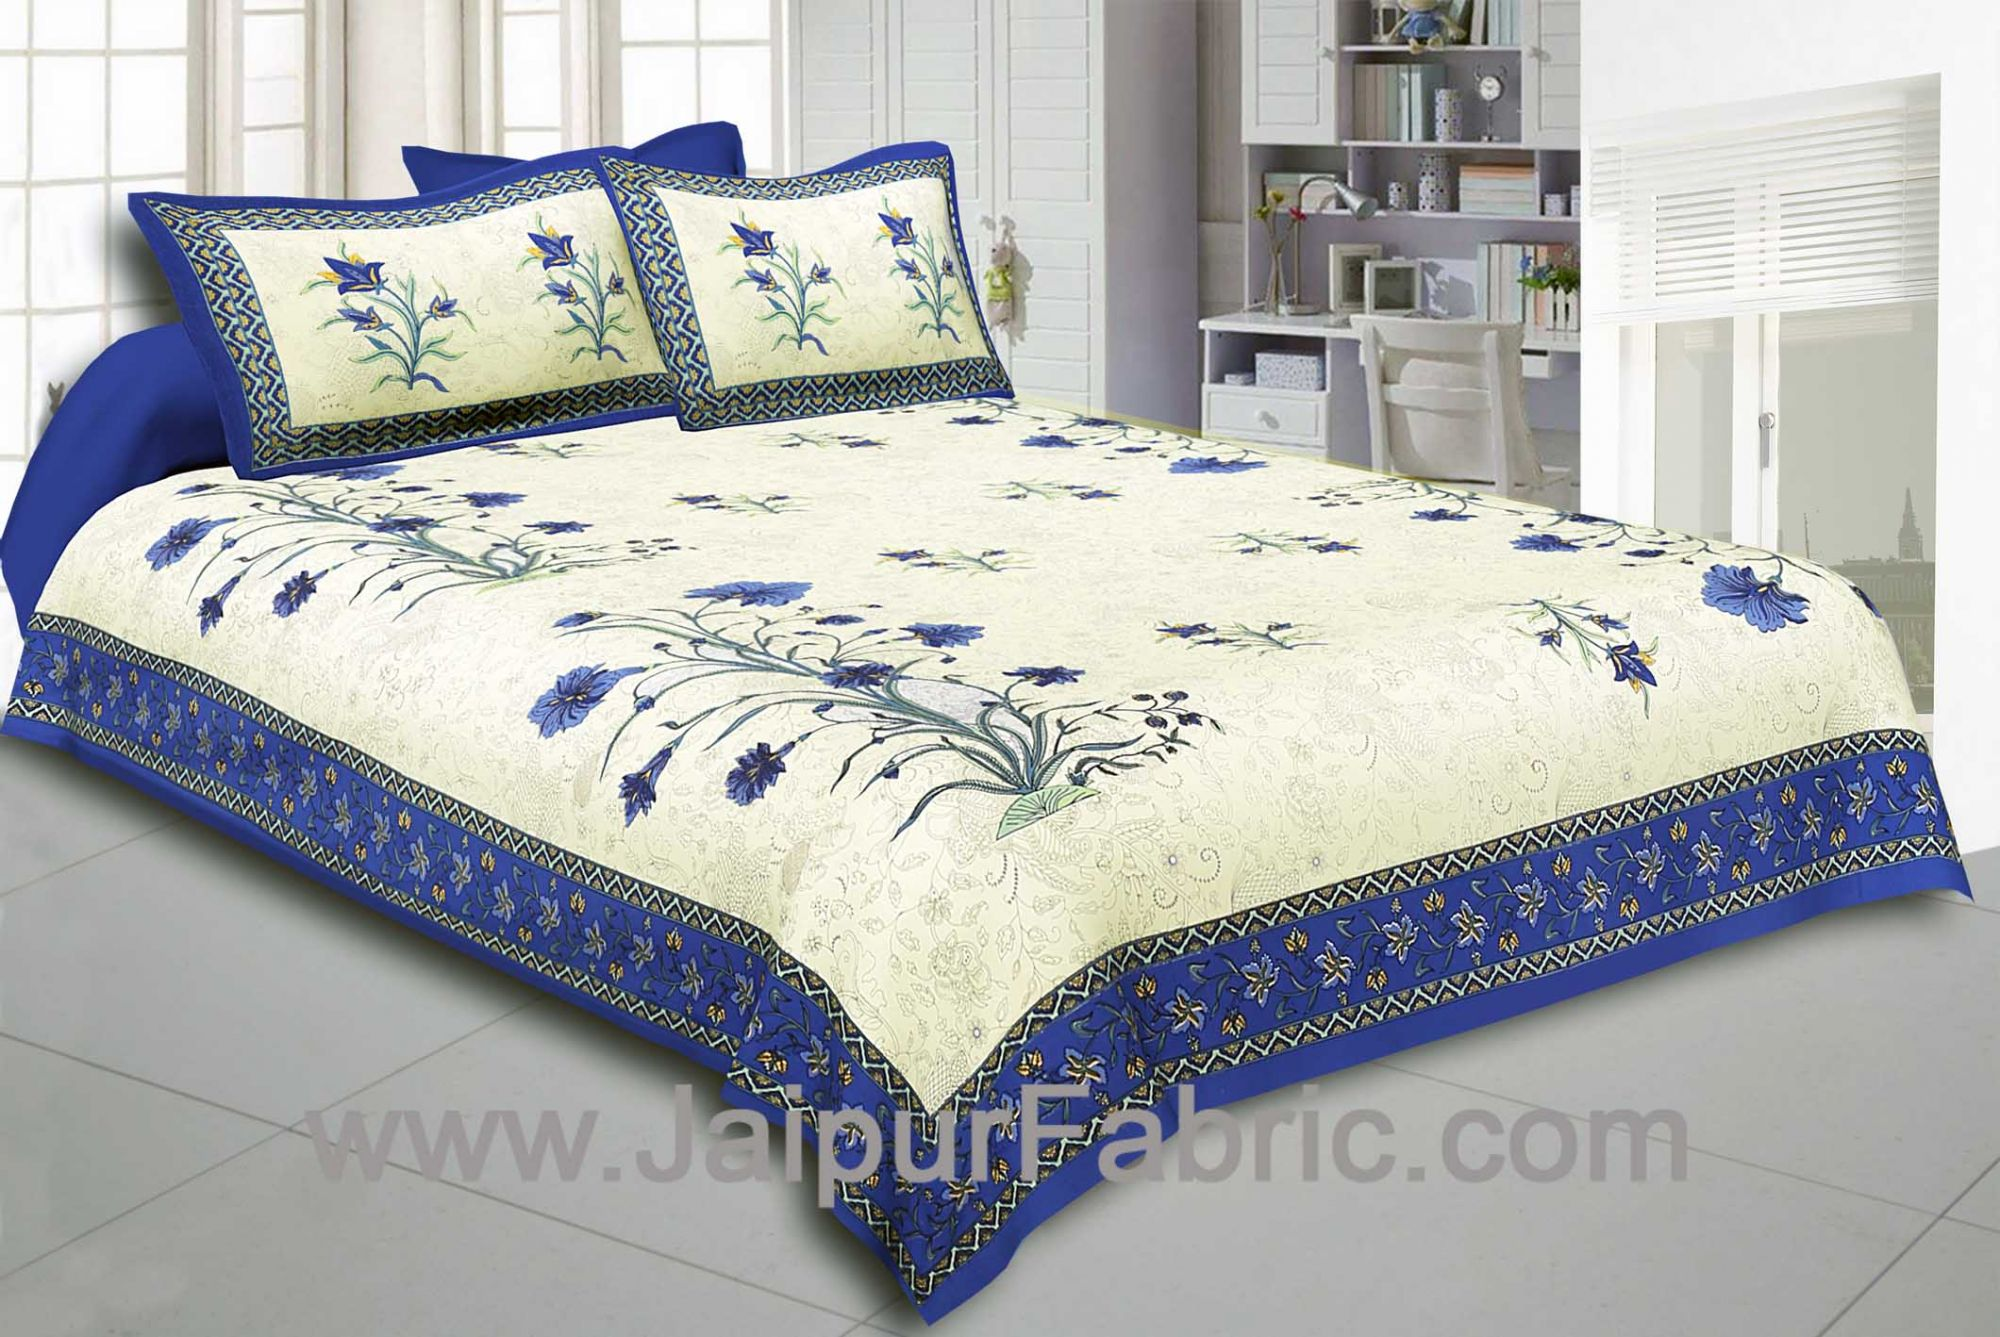 Blue Border Cream Base  Bud And Tree  Print Cotton Double  Bed Sheet